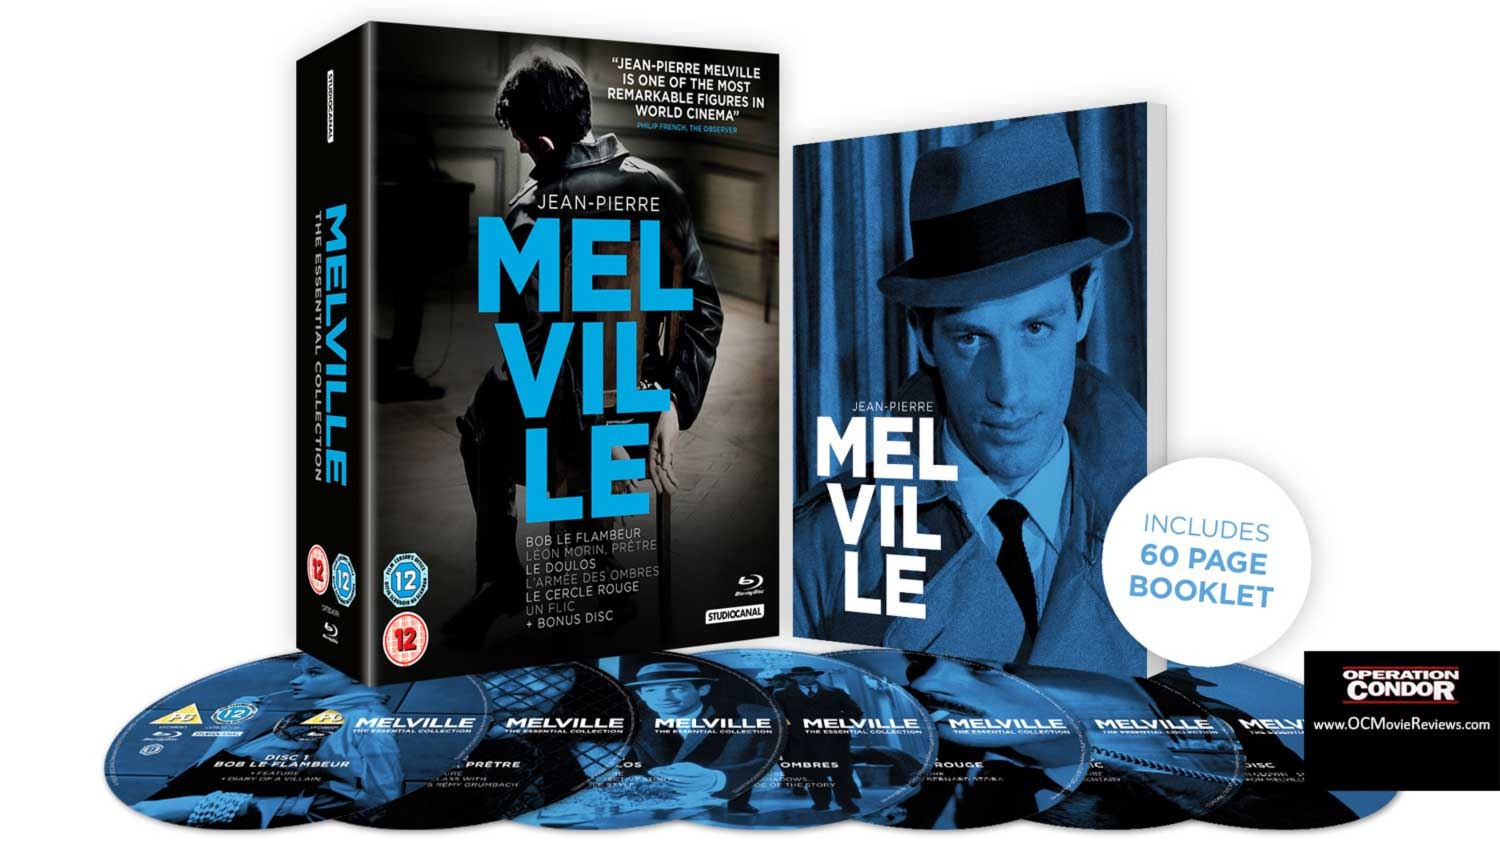 Le Doulos (The Finger Man) Review – Part III Of Our Jean-Pierre Melville Collection - OC Movie Reviews - Movie Reviews, Movie News, Documentary Reviews, Short Films, Short Film Reviews, Trailers, Movie Trailers, Interviews, film reviews, film news, hollywood, indie films, documentaries